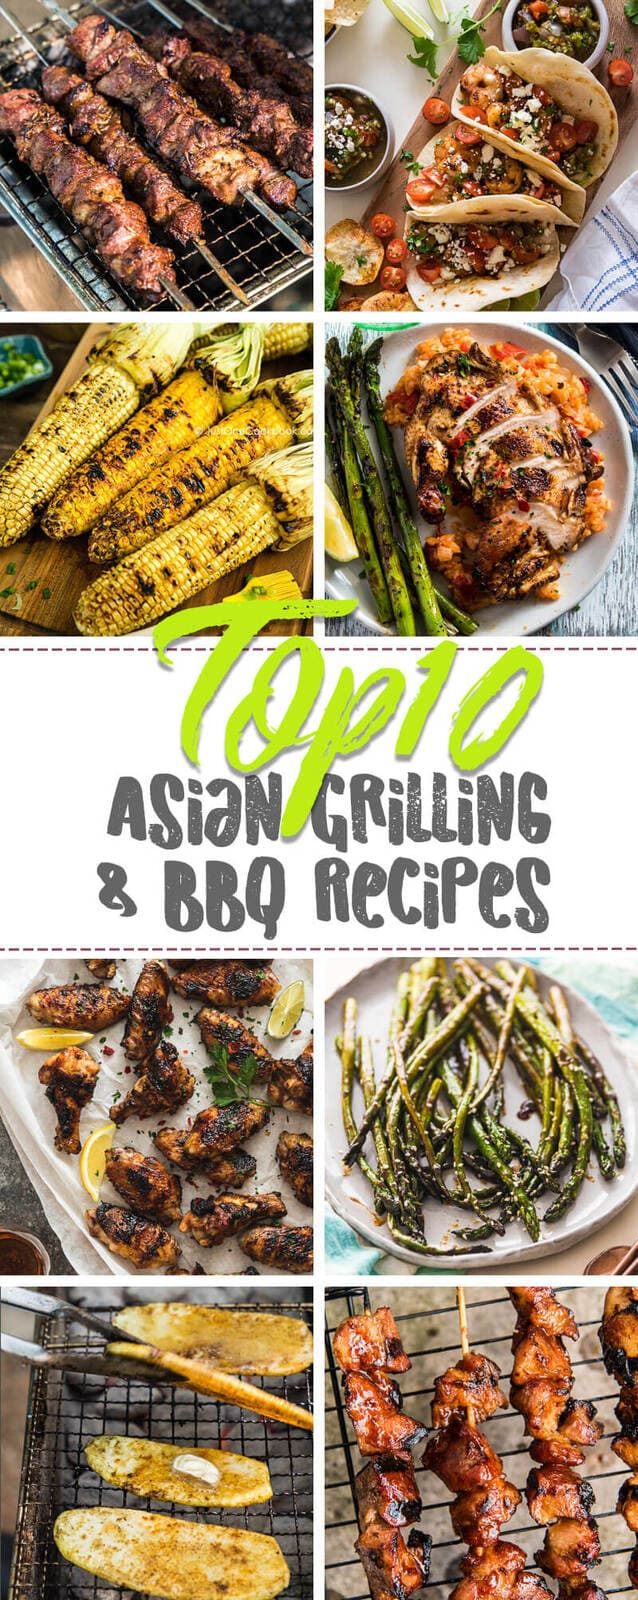 18 Must-Try Asian Grilling and BBQ Recipes